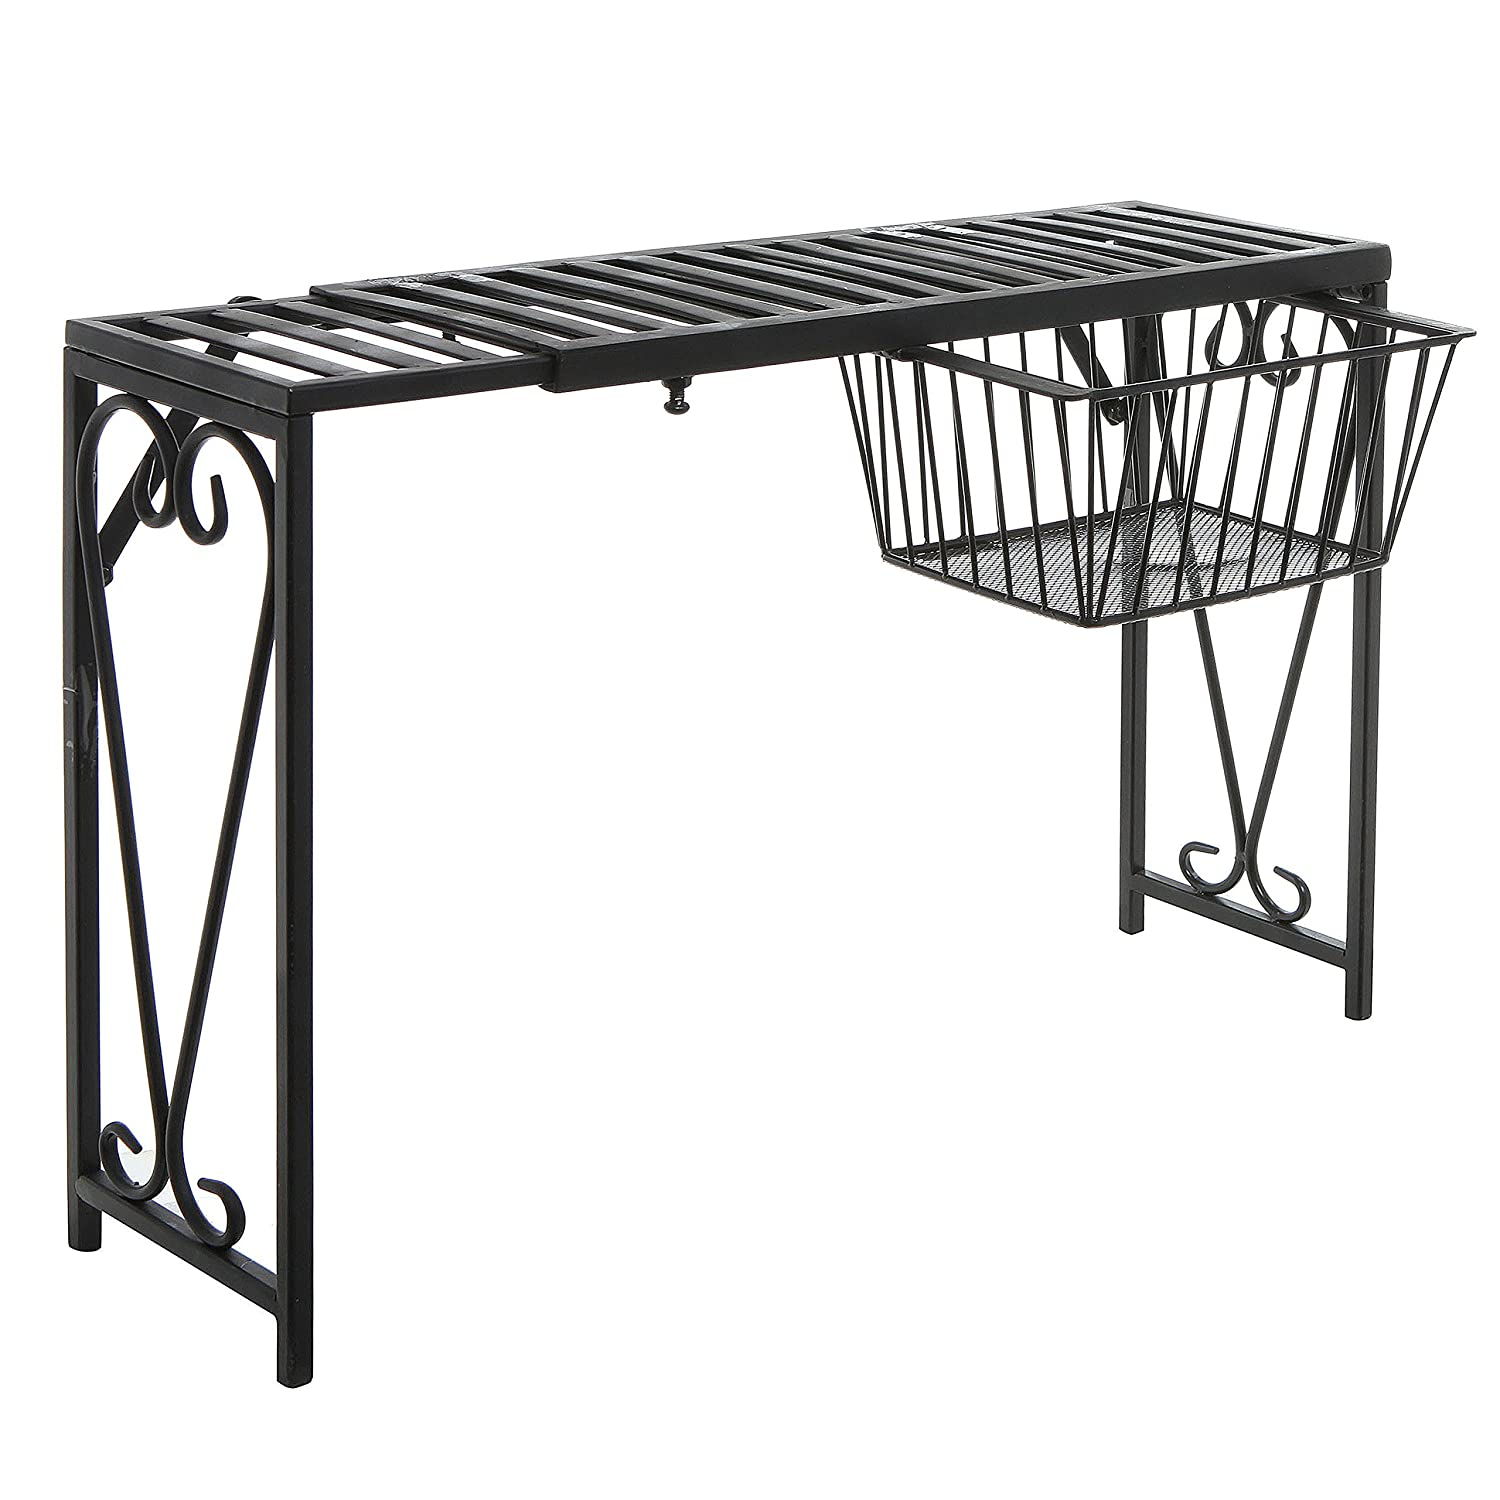 Black Metal Rack w/ Pull-Out Drawer